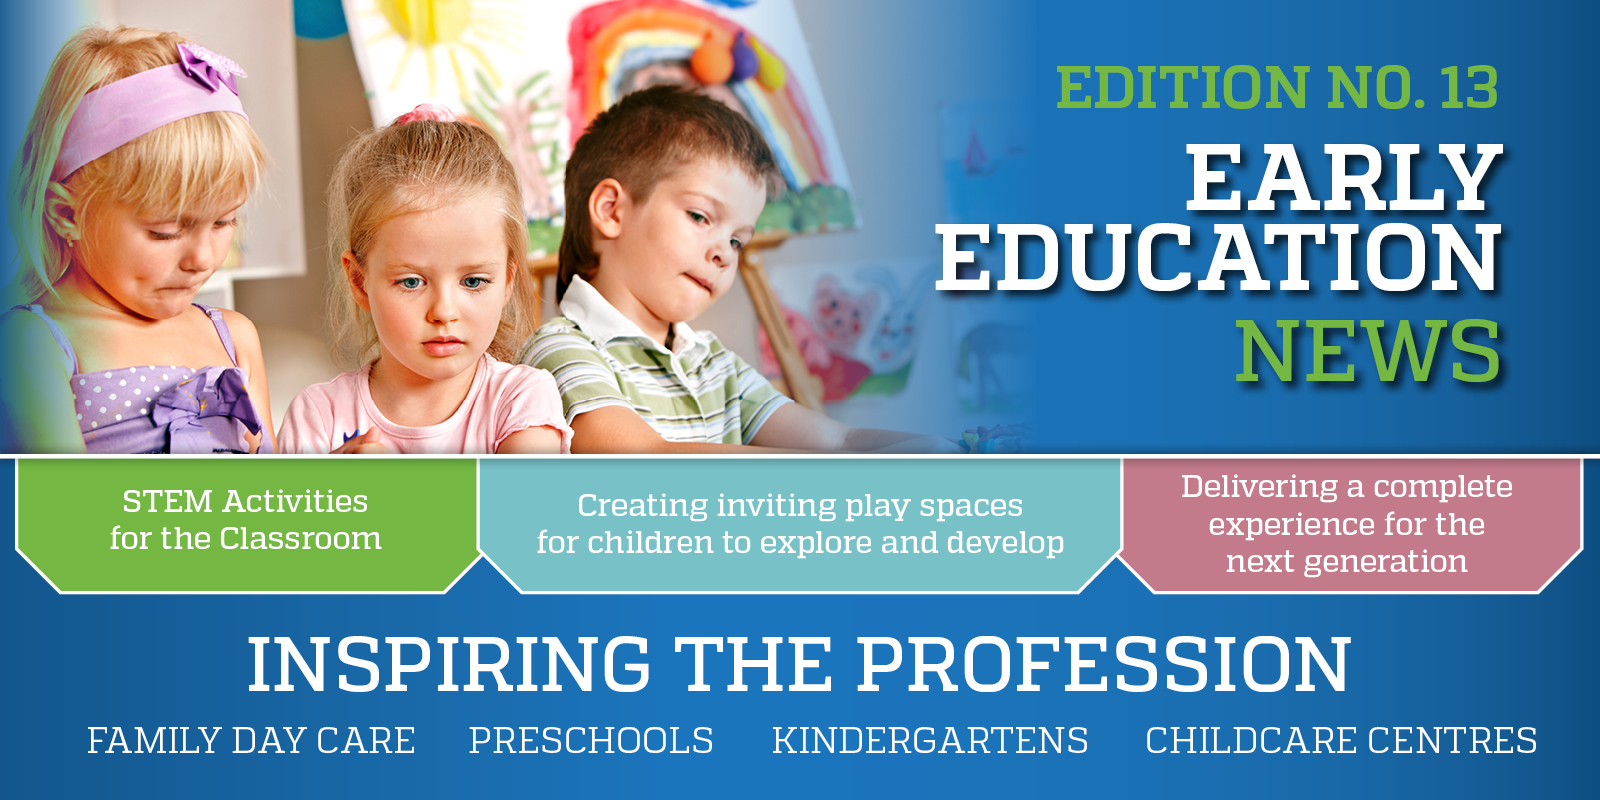 Early Education News Edition 13